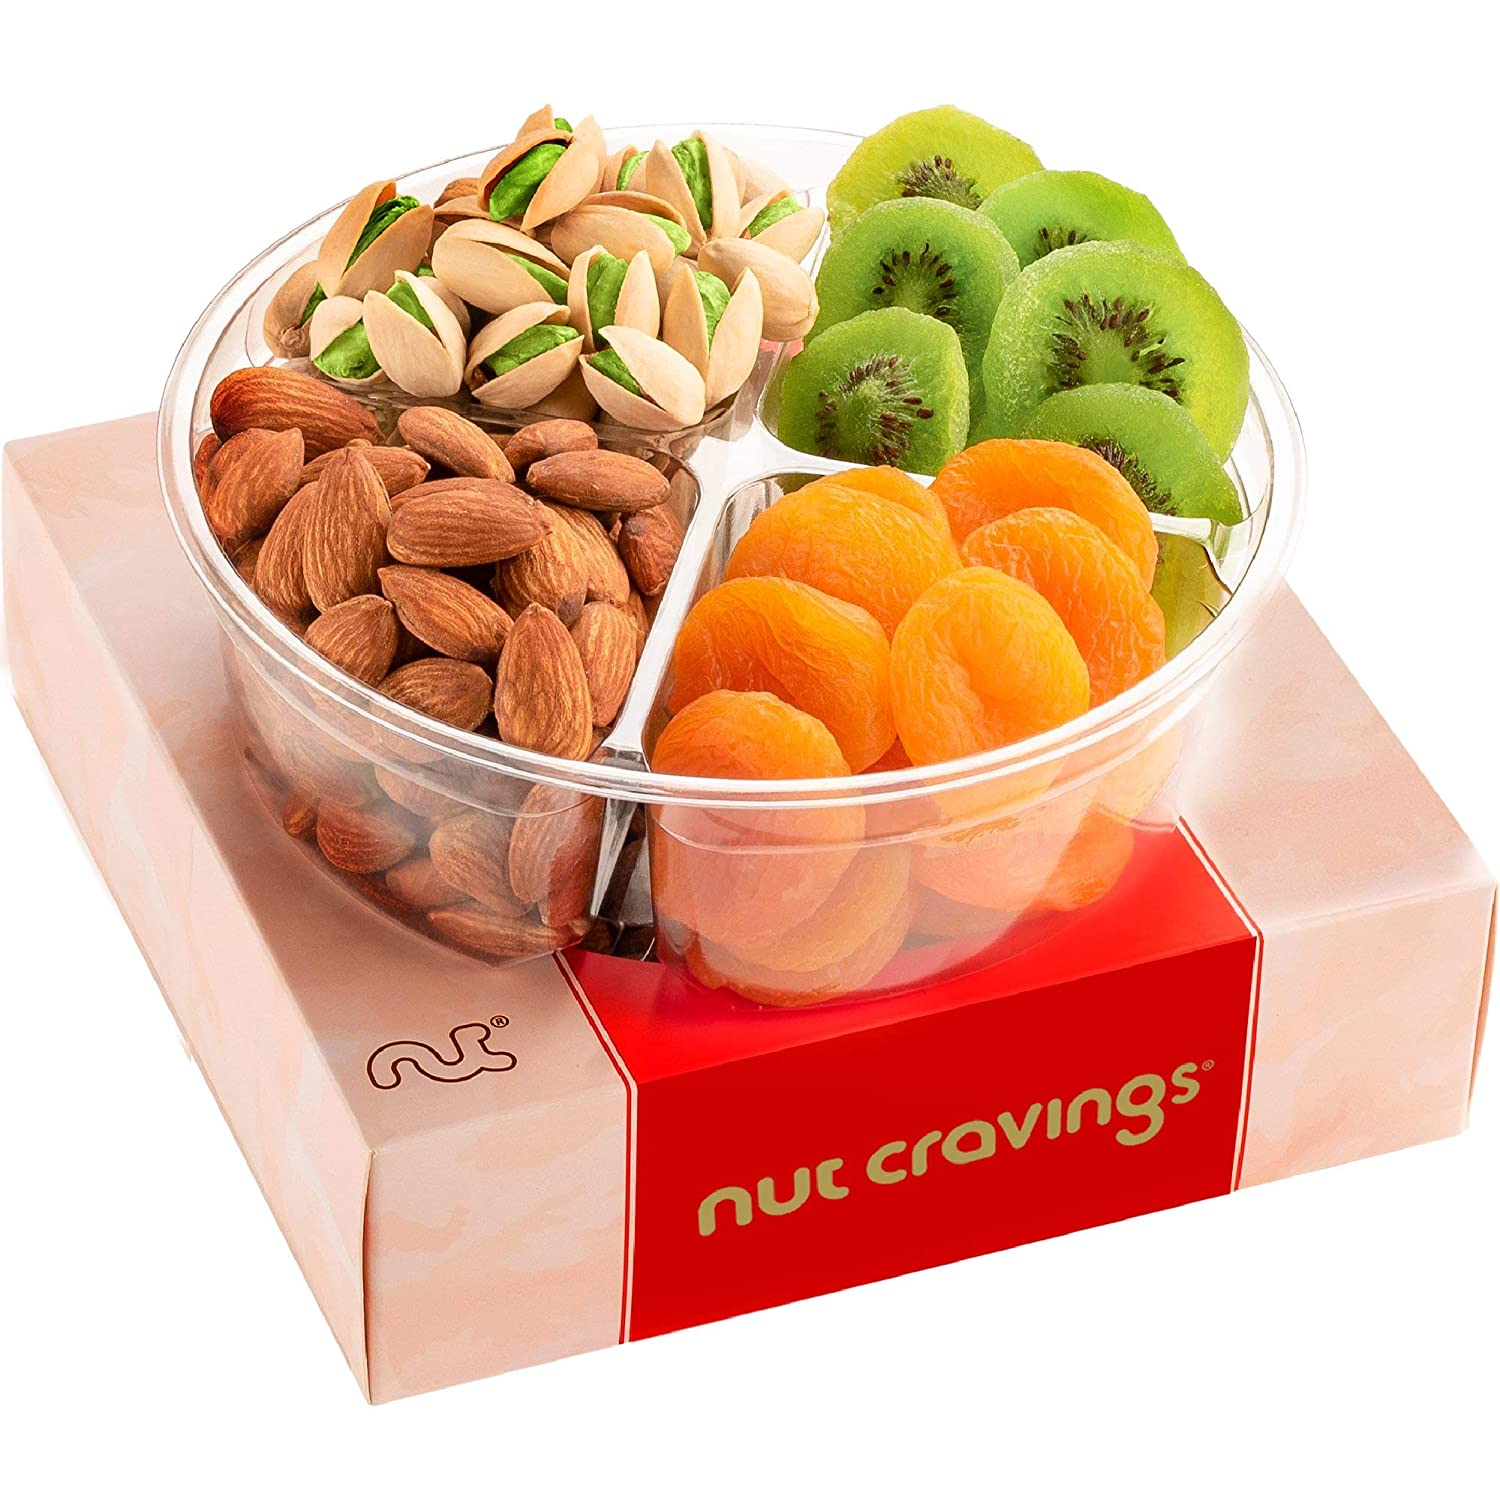 Gourmet Dried Fruit & Nut Gift Basket, Red Box (4 Mix Tray) - Easter Food Arrangement Platter, Care Package Variety, Prime Birthday Assortment, Healthy Kosher Snack Tray for Women, Men, Adults